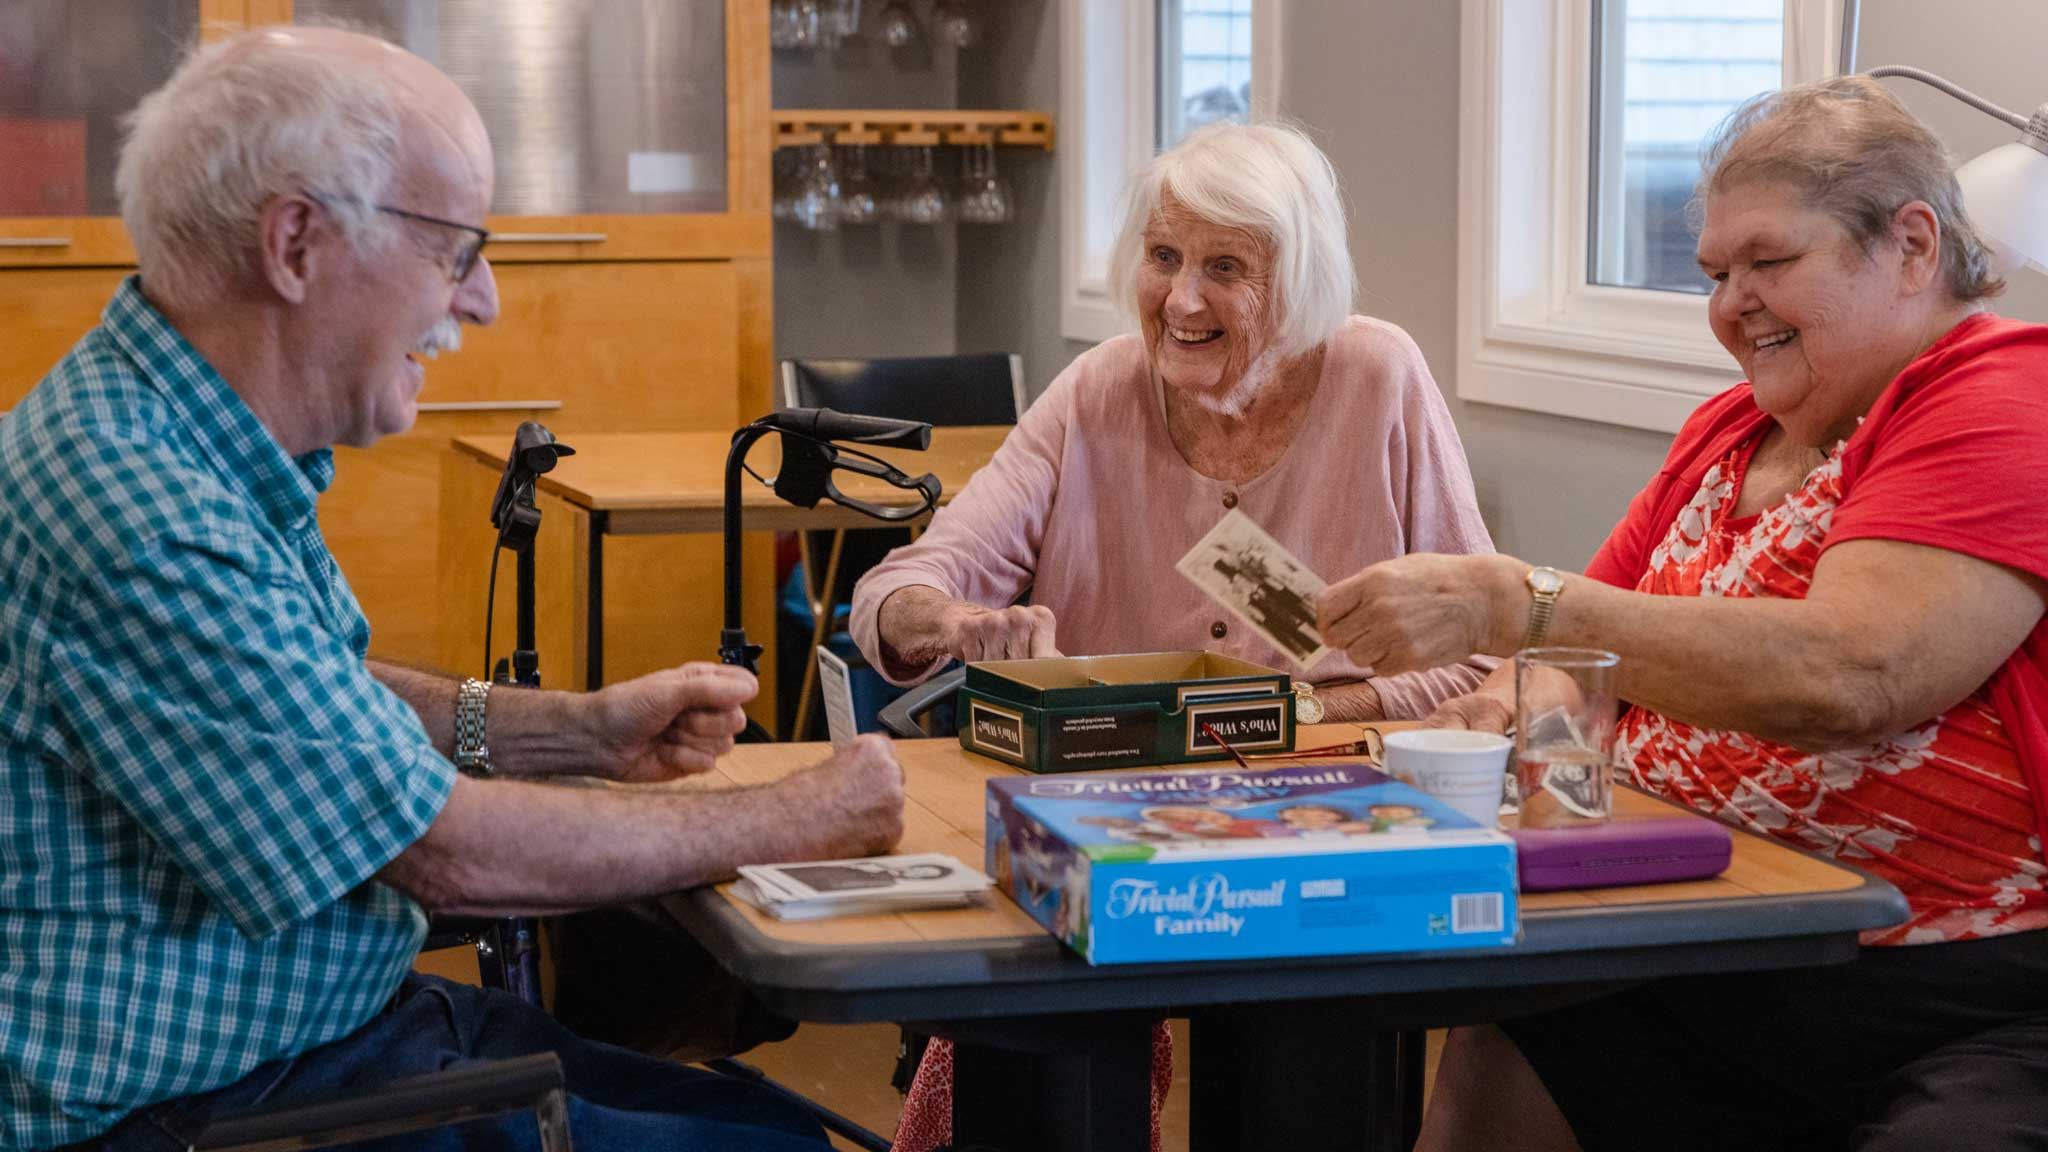 3 seniors sitting around a table playing a trivia game and laughing